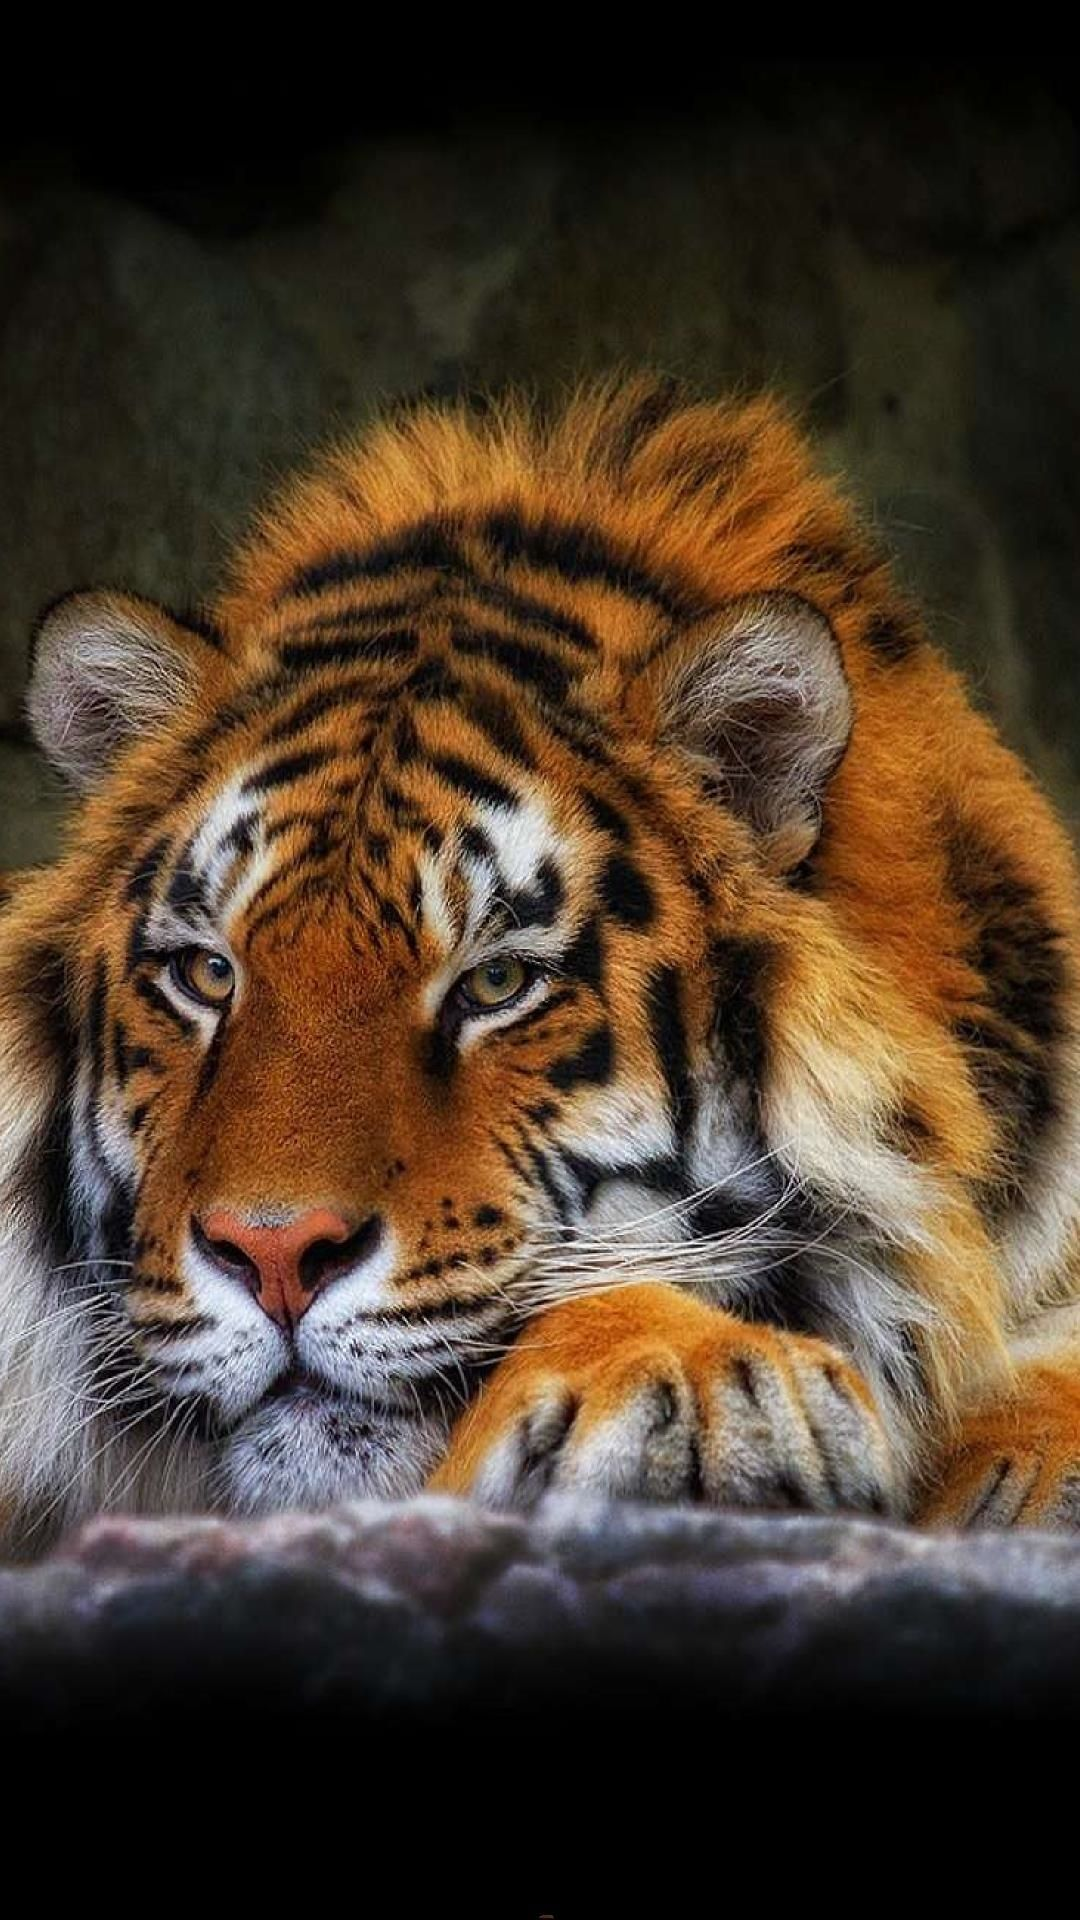 Wallpapers For Samsung Galaxy S4 Thousands Of Hd Wallpapers For Your Samsung Smartphone In 1080x1920 Resolution Wild Cats Tiger Wallpaper Animals